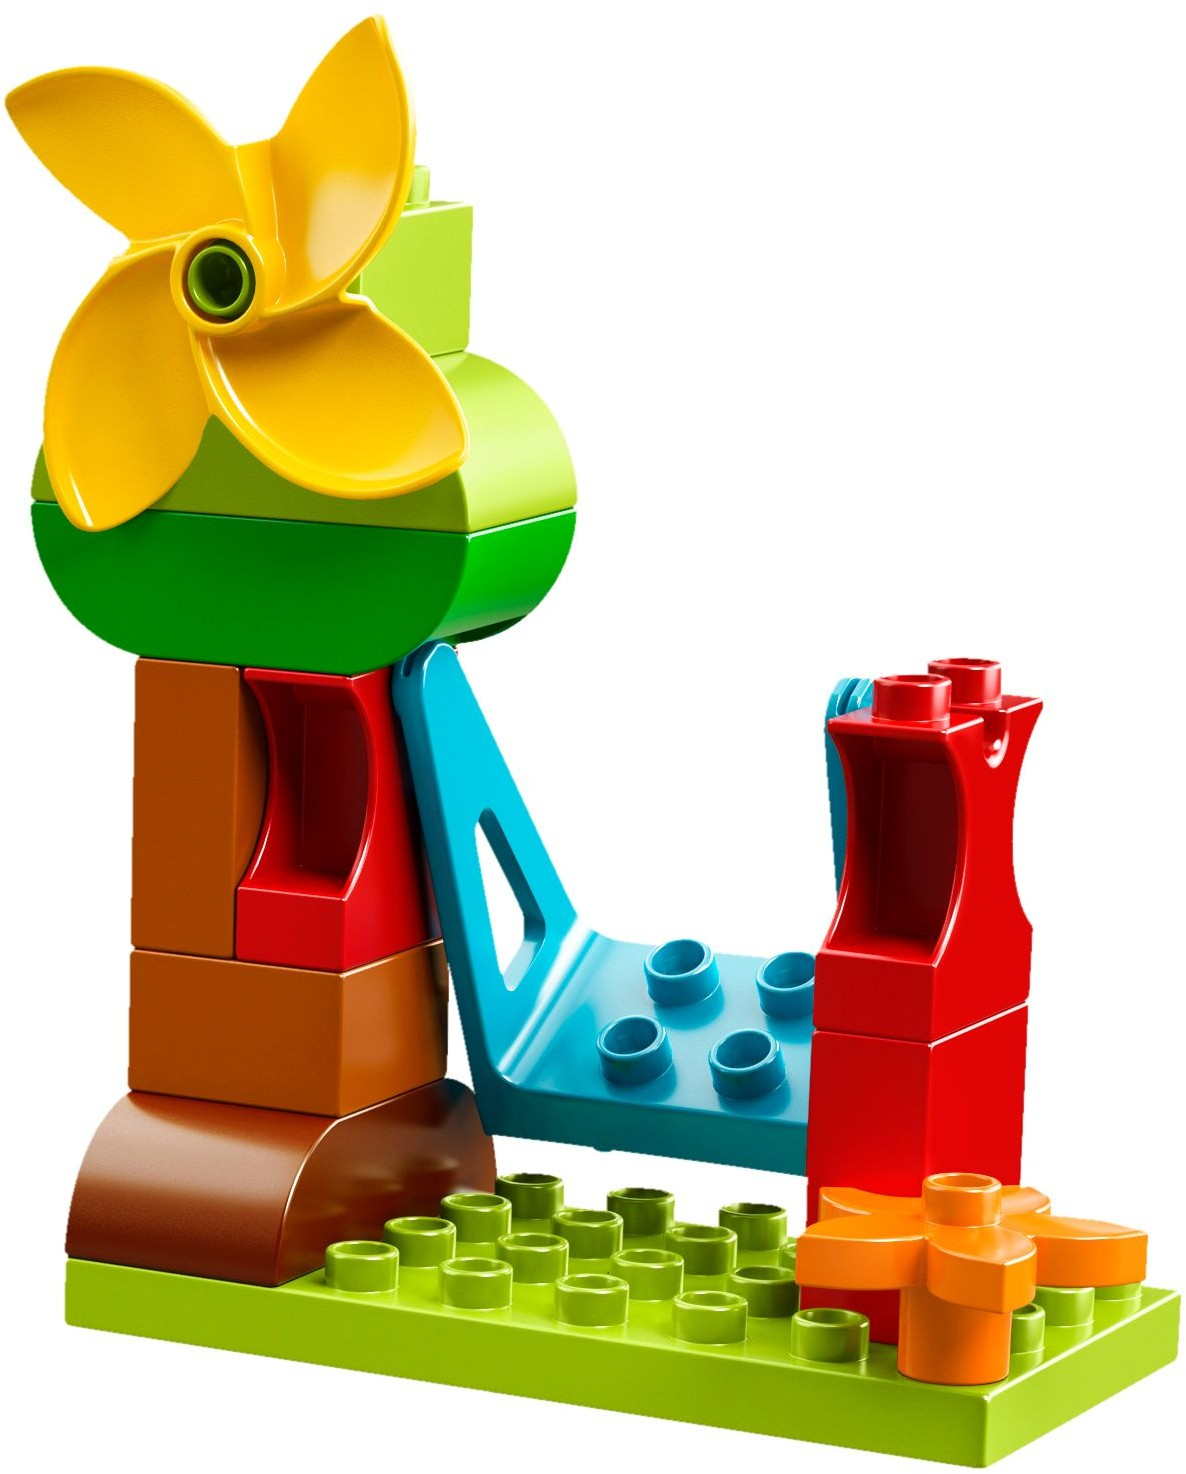 Easy Toy LEGO 10864 Duplo My First Large Playground Brick Box Construction Set